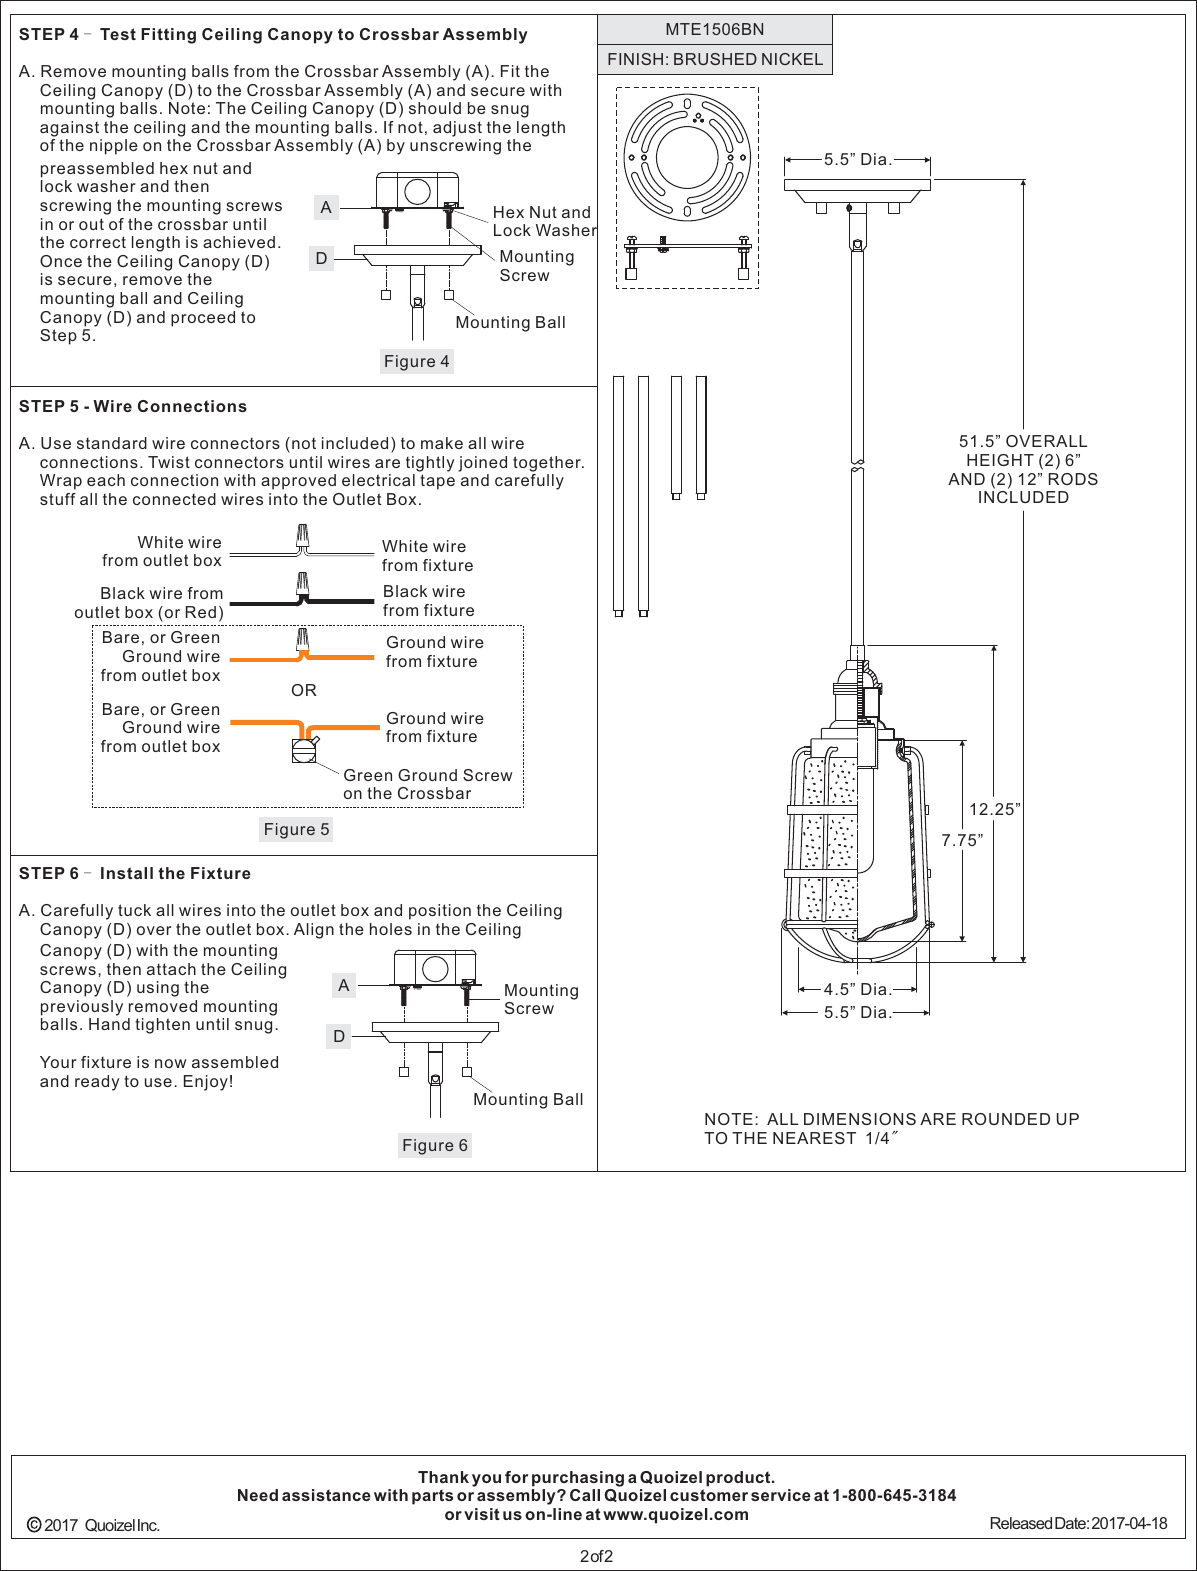 Is Mte1506bn Ism Wiring Diagram Page 2 Of